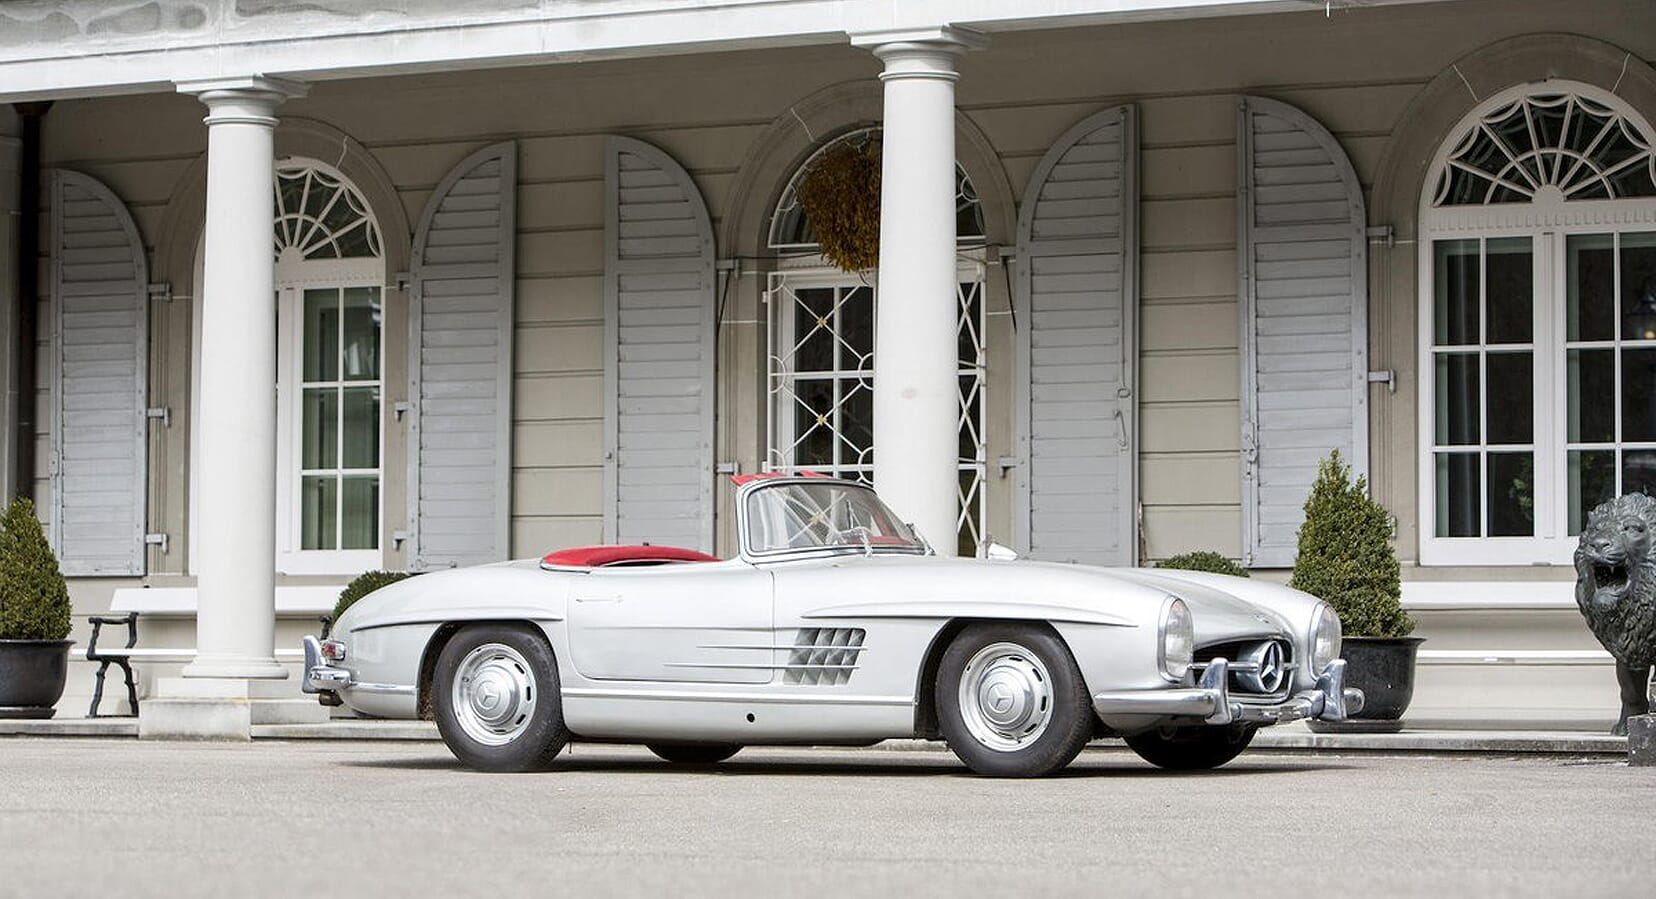 Some of the World's Most Desirable Cars Have Just Been Found in a Swiss Castle